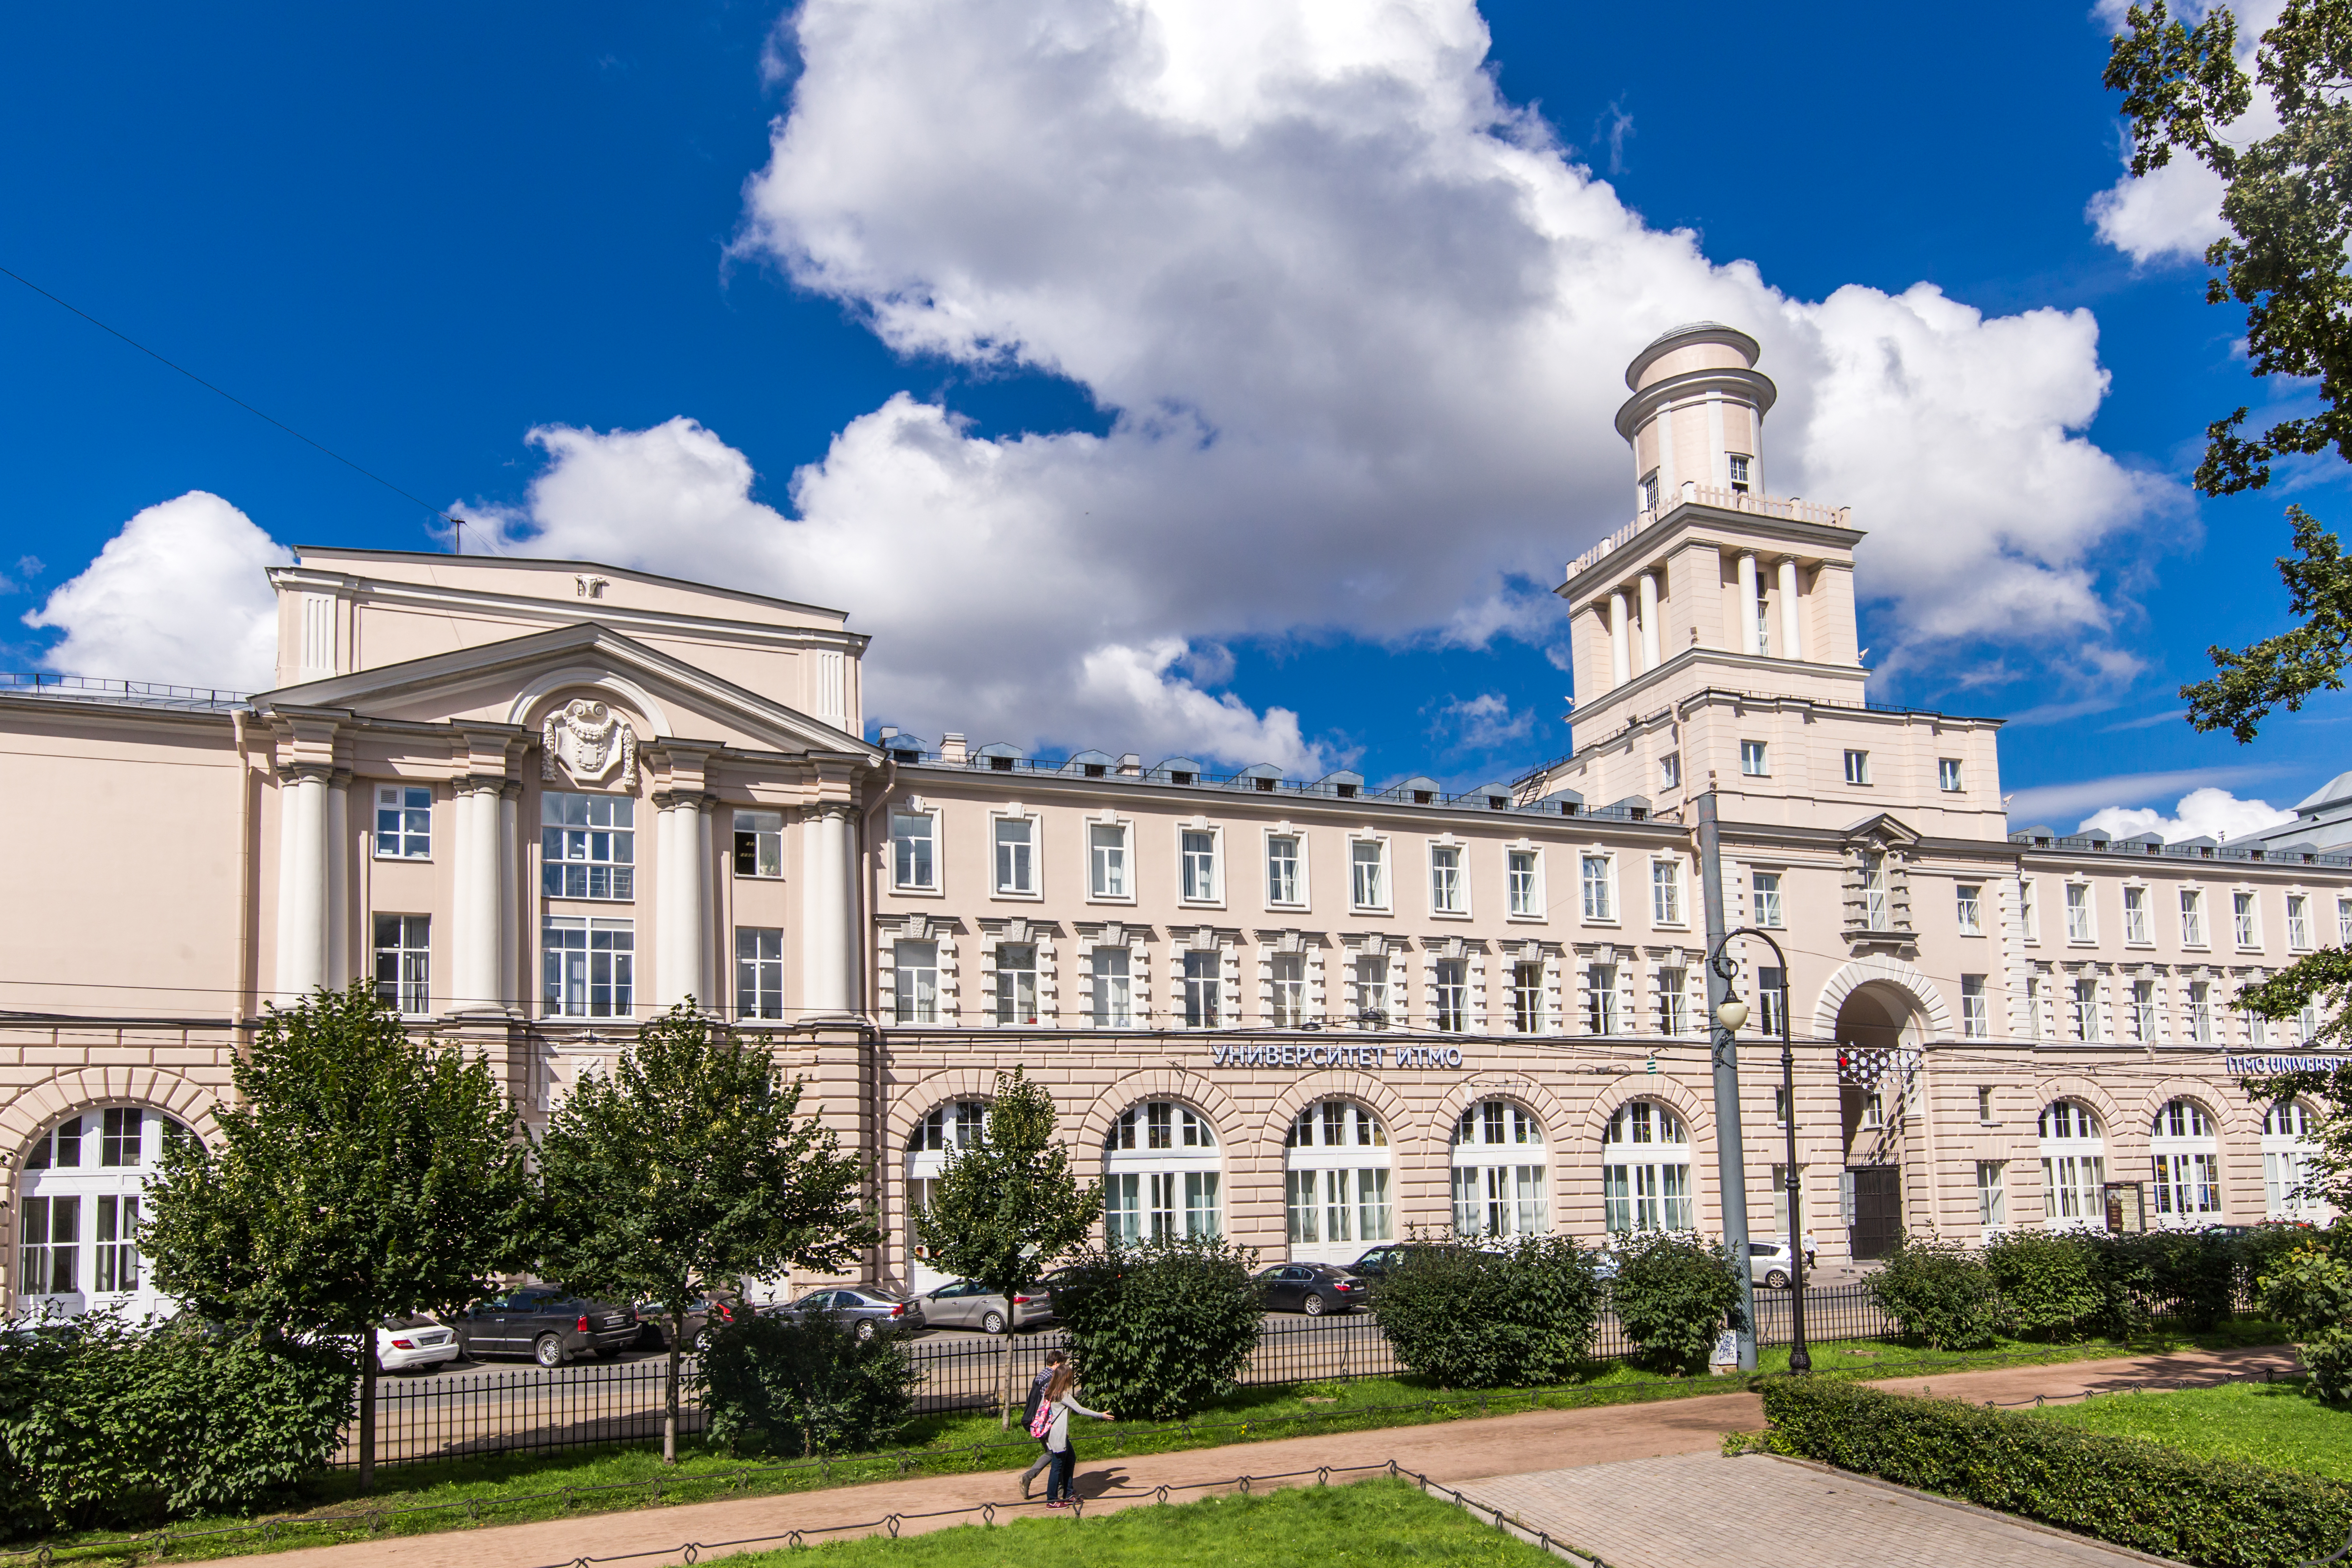 Most Russian universities (9 out of 13) have seen their standings slip in comparison to last year. Photo: ITMO University in Saint Petersburg.